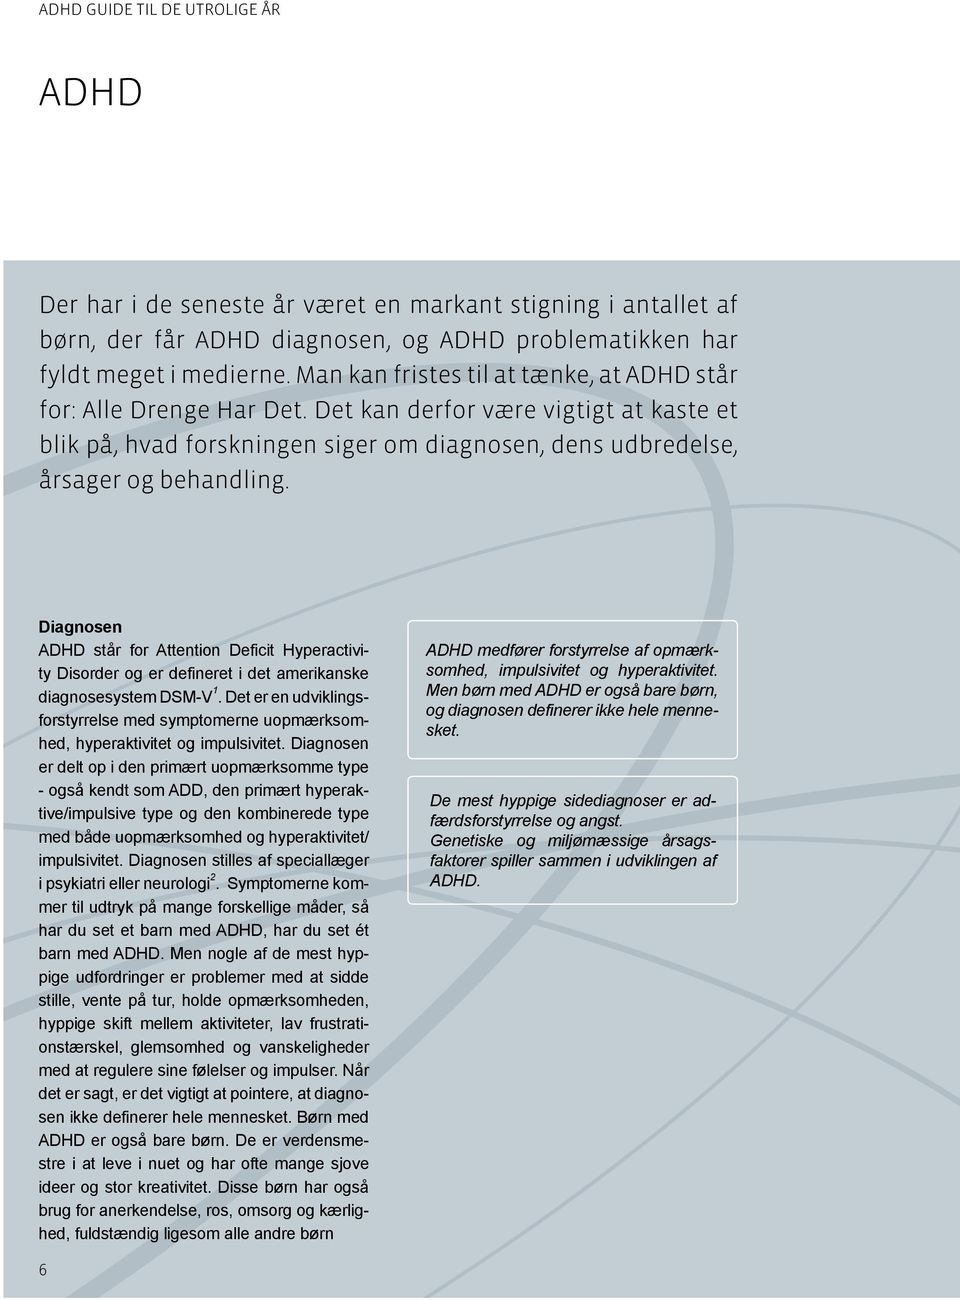 Diagnosen ADHD står for Attention Deficit Hyperactivity Disorder og er defineret i det amerikanske diagnosesystem DSM-V 1.